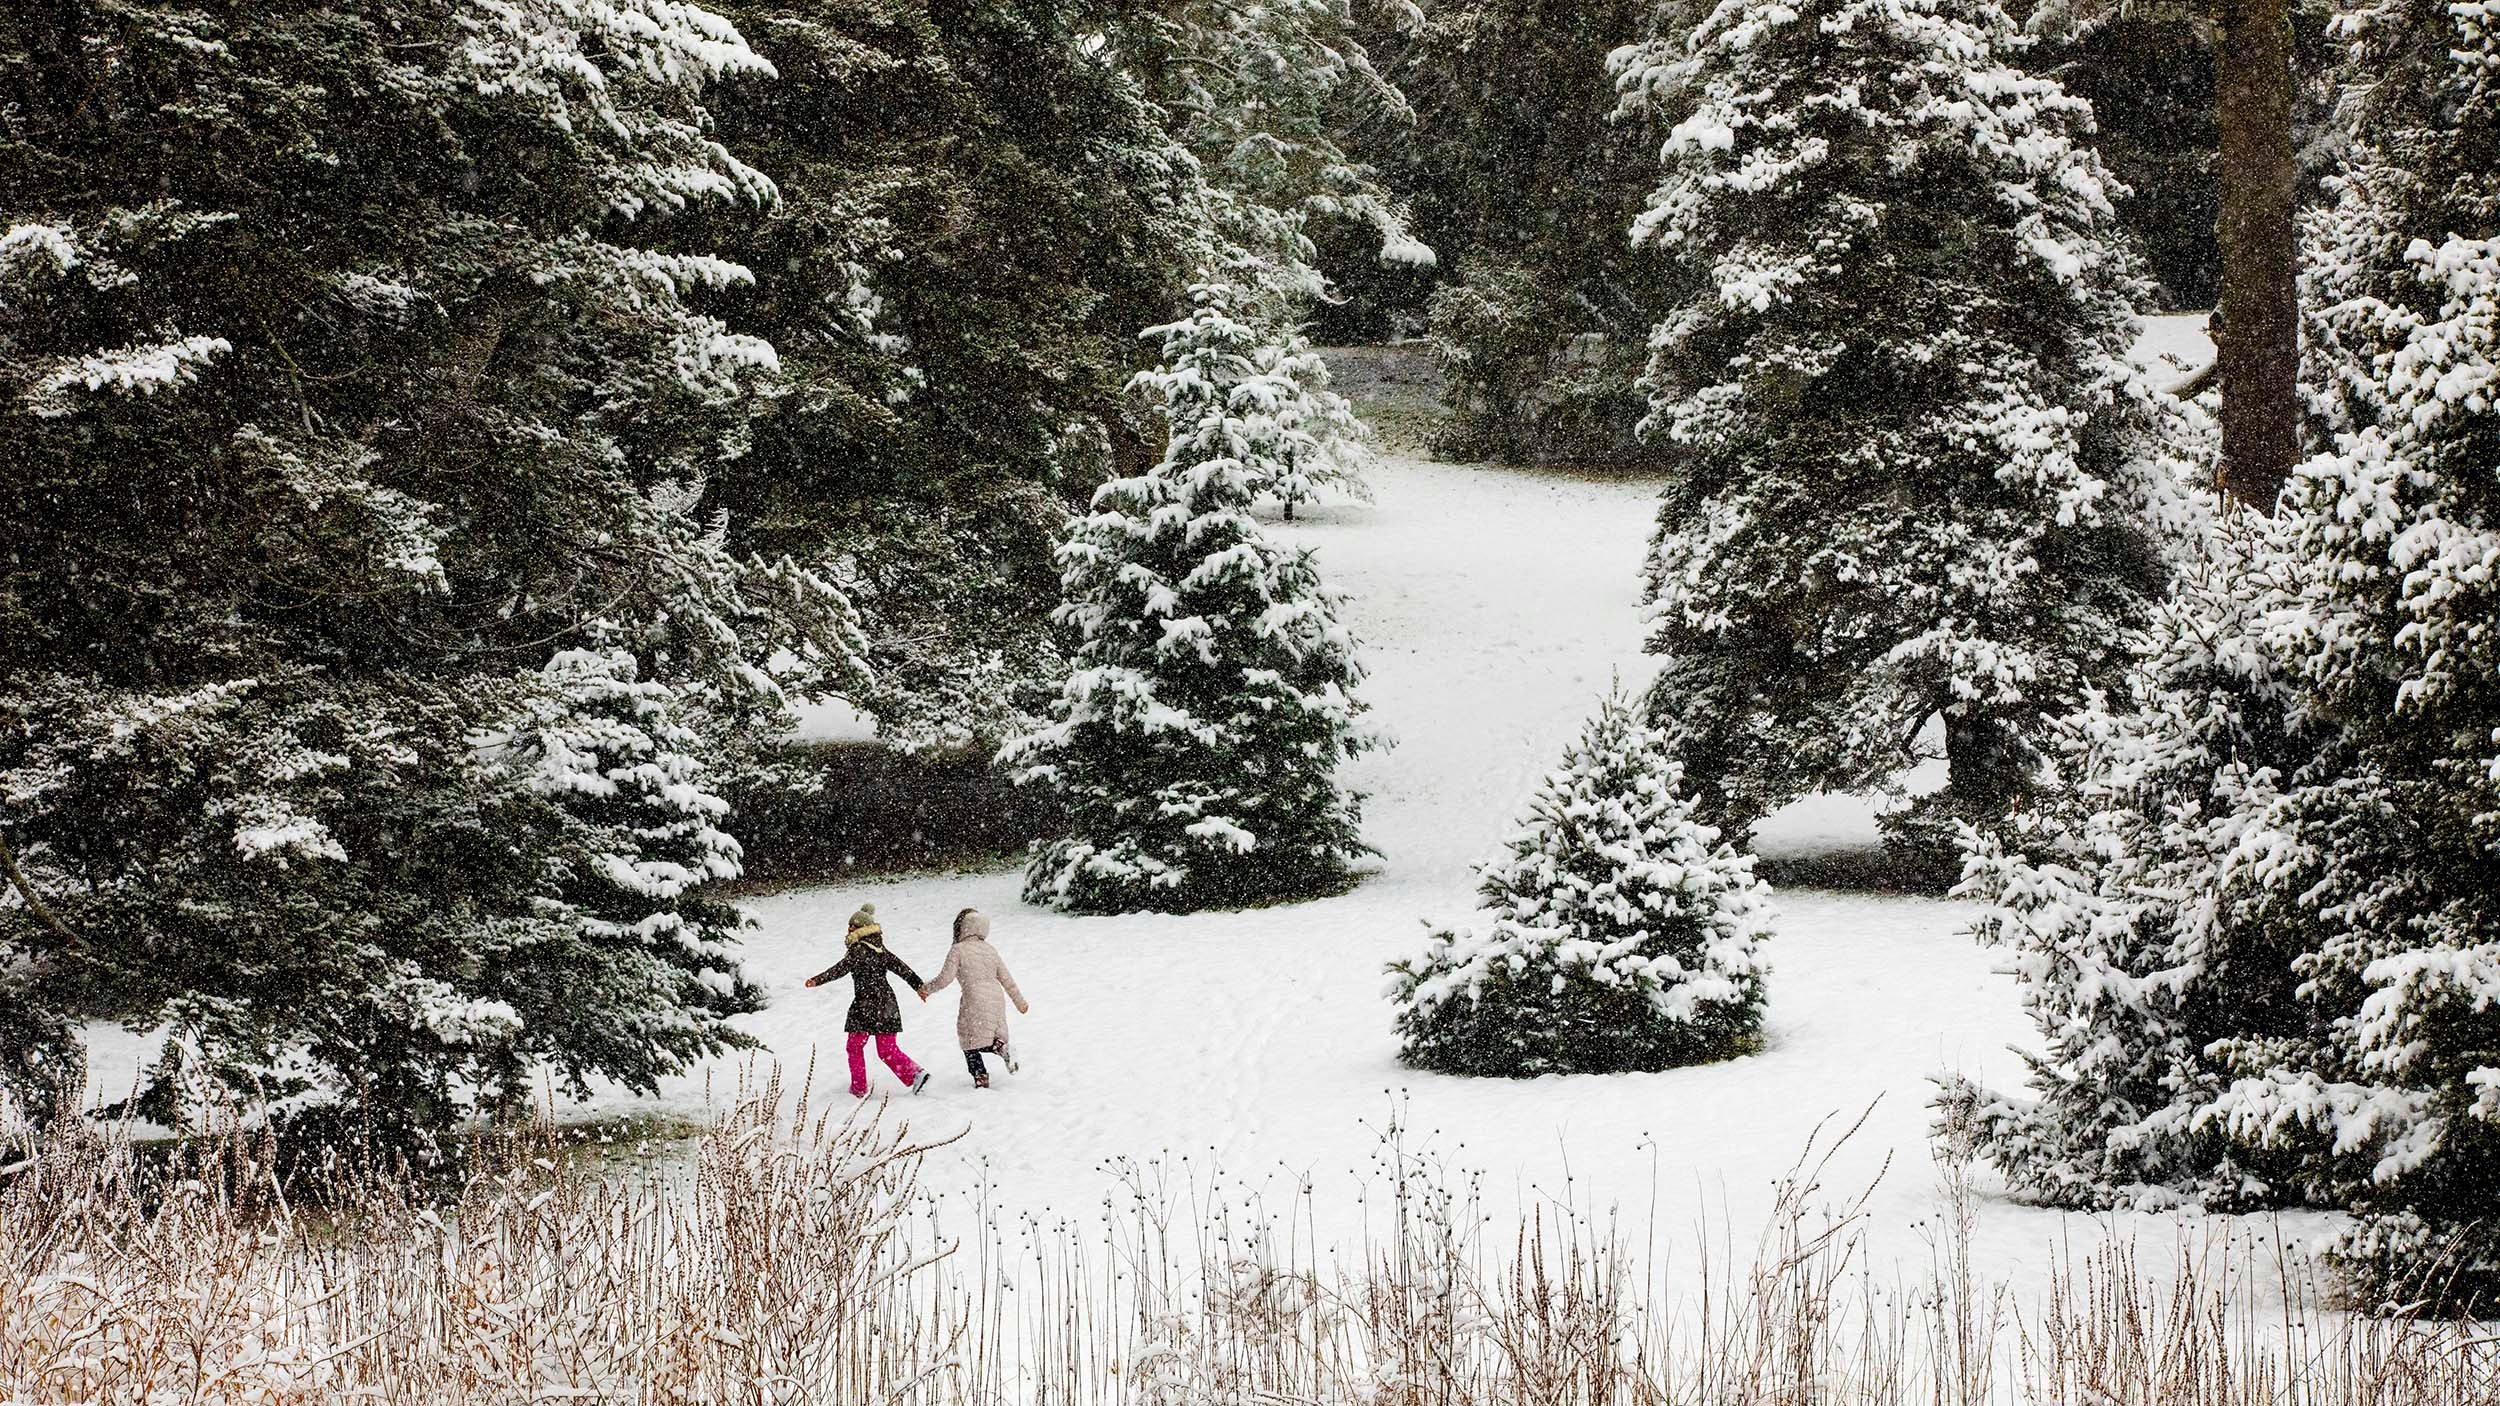 Valentina Iacobciuc and Elena Fevraleva frolic in the Conifer Collection at the Arnold Arboretum.